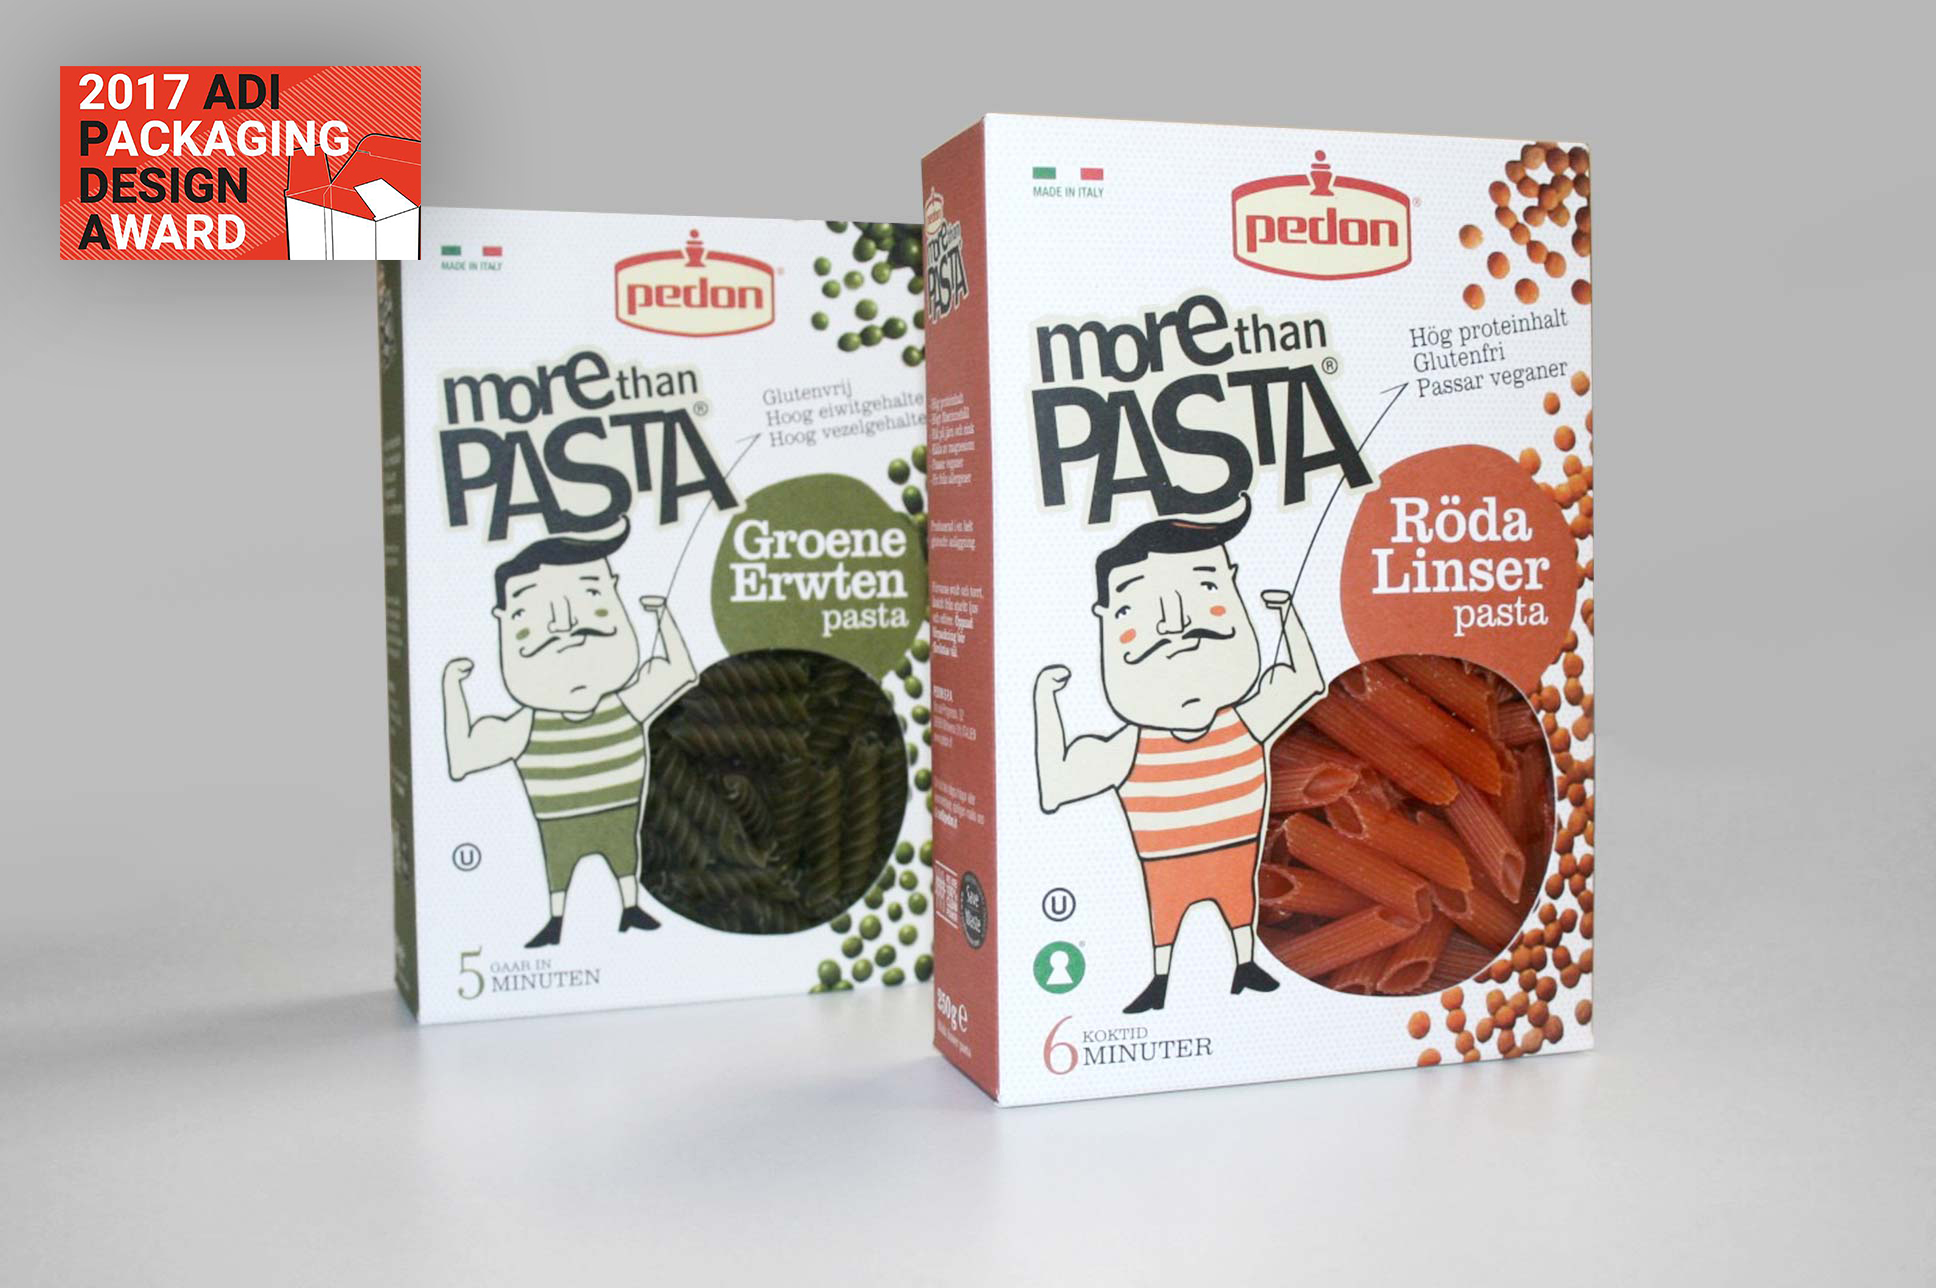 More than pasta Pedon (adi packaging design awards 2017)